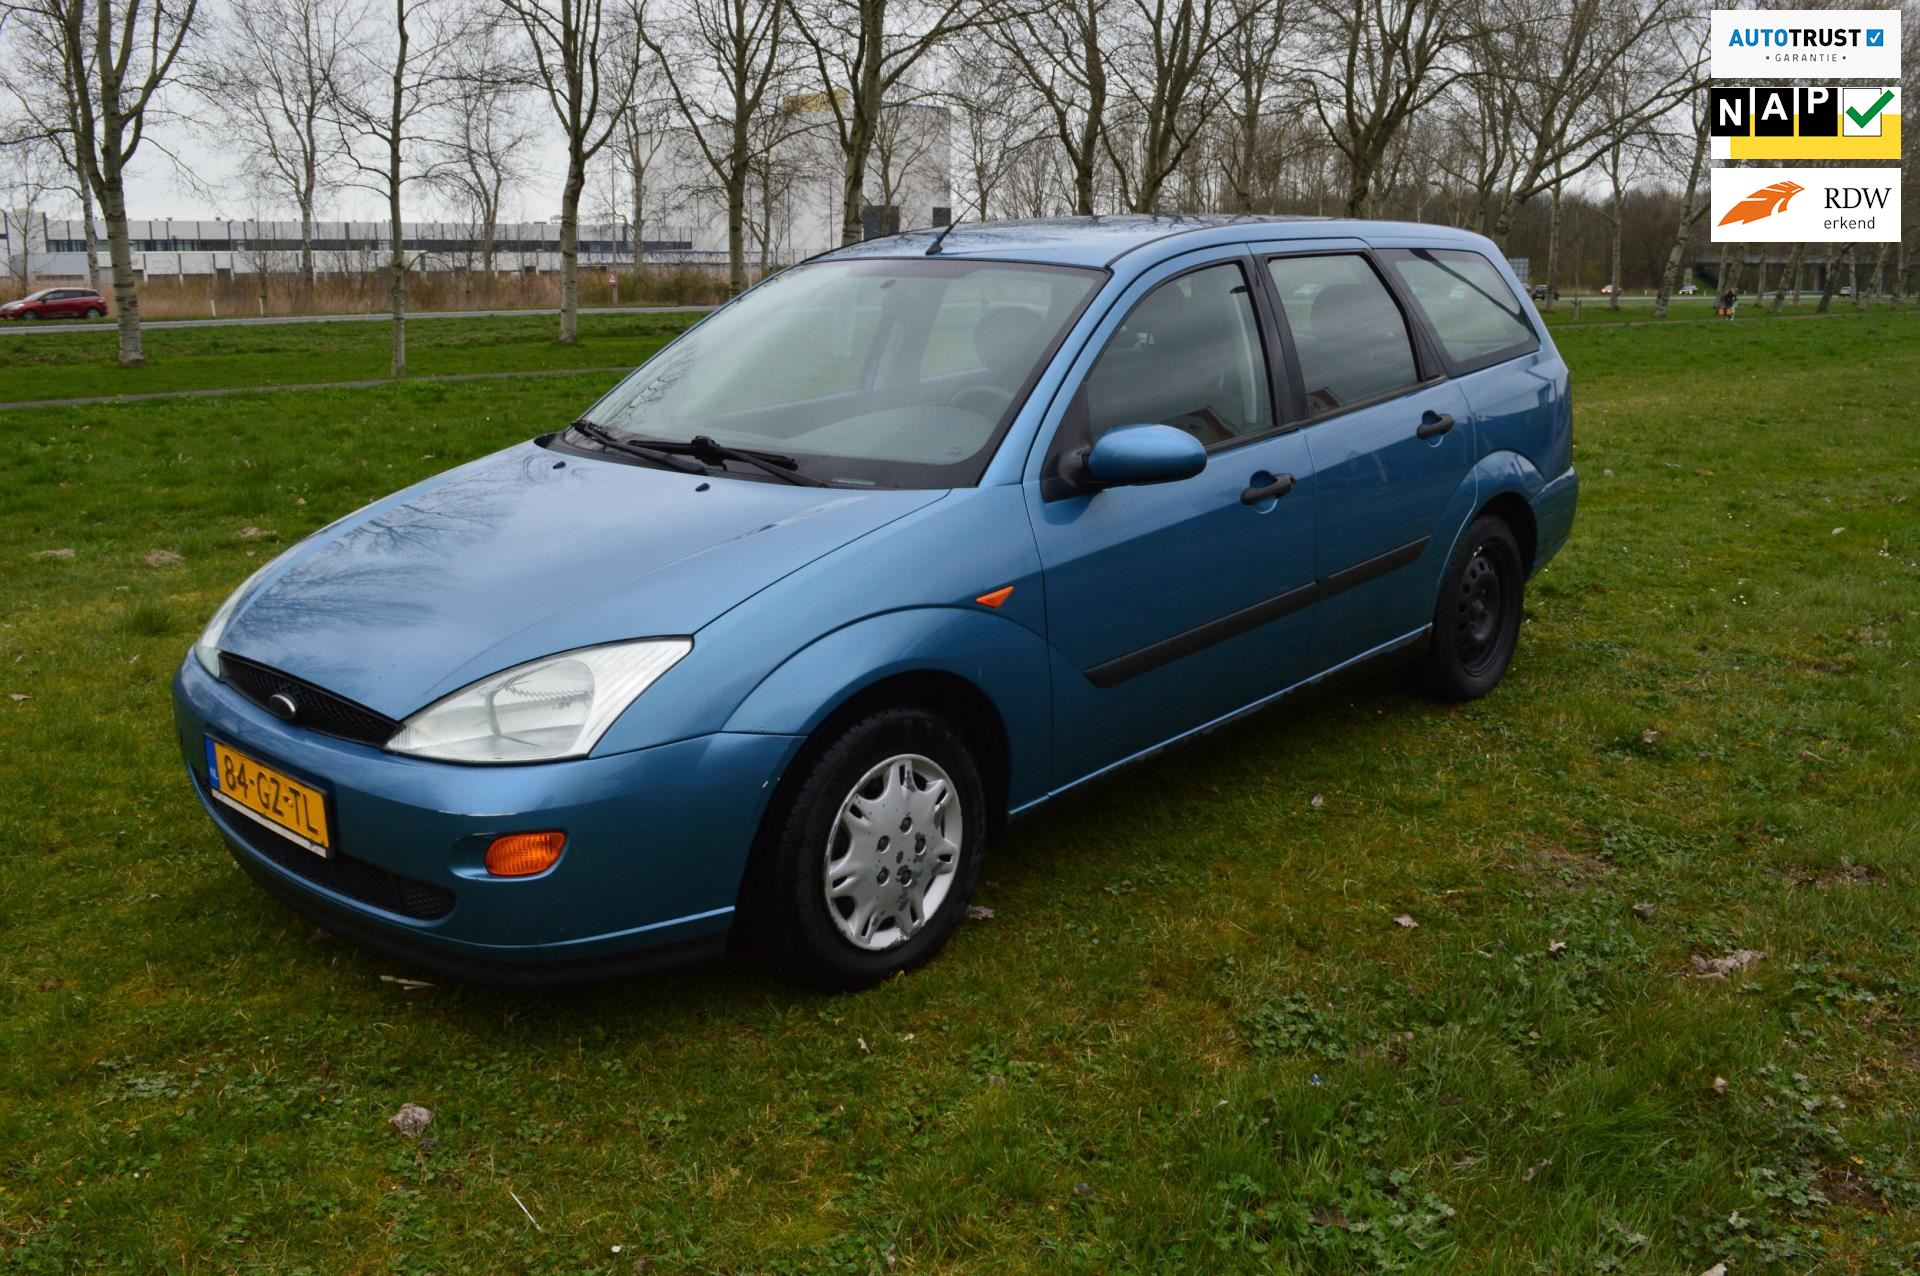 Ford Focus Wagon occasion - New Occasions Almere Buiten